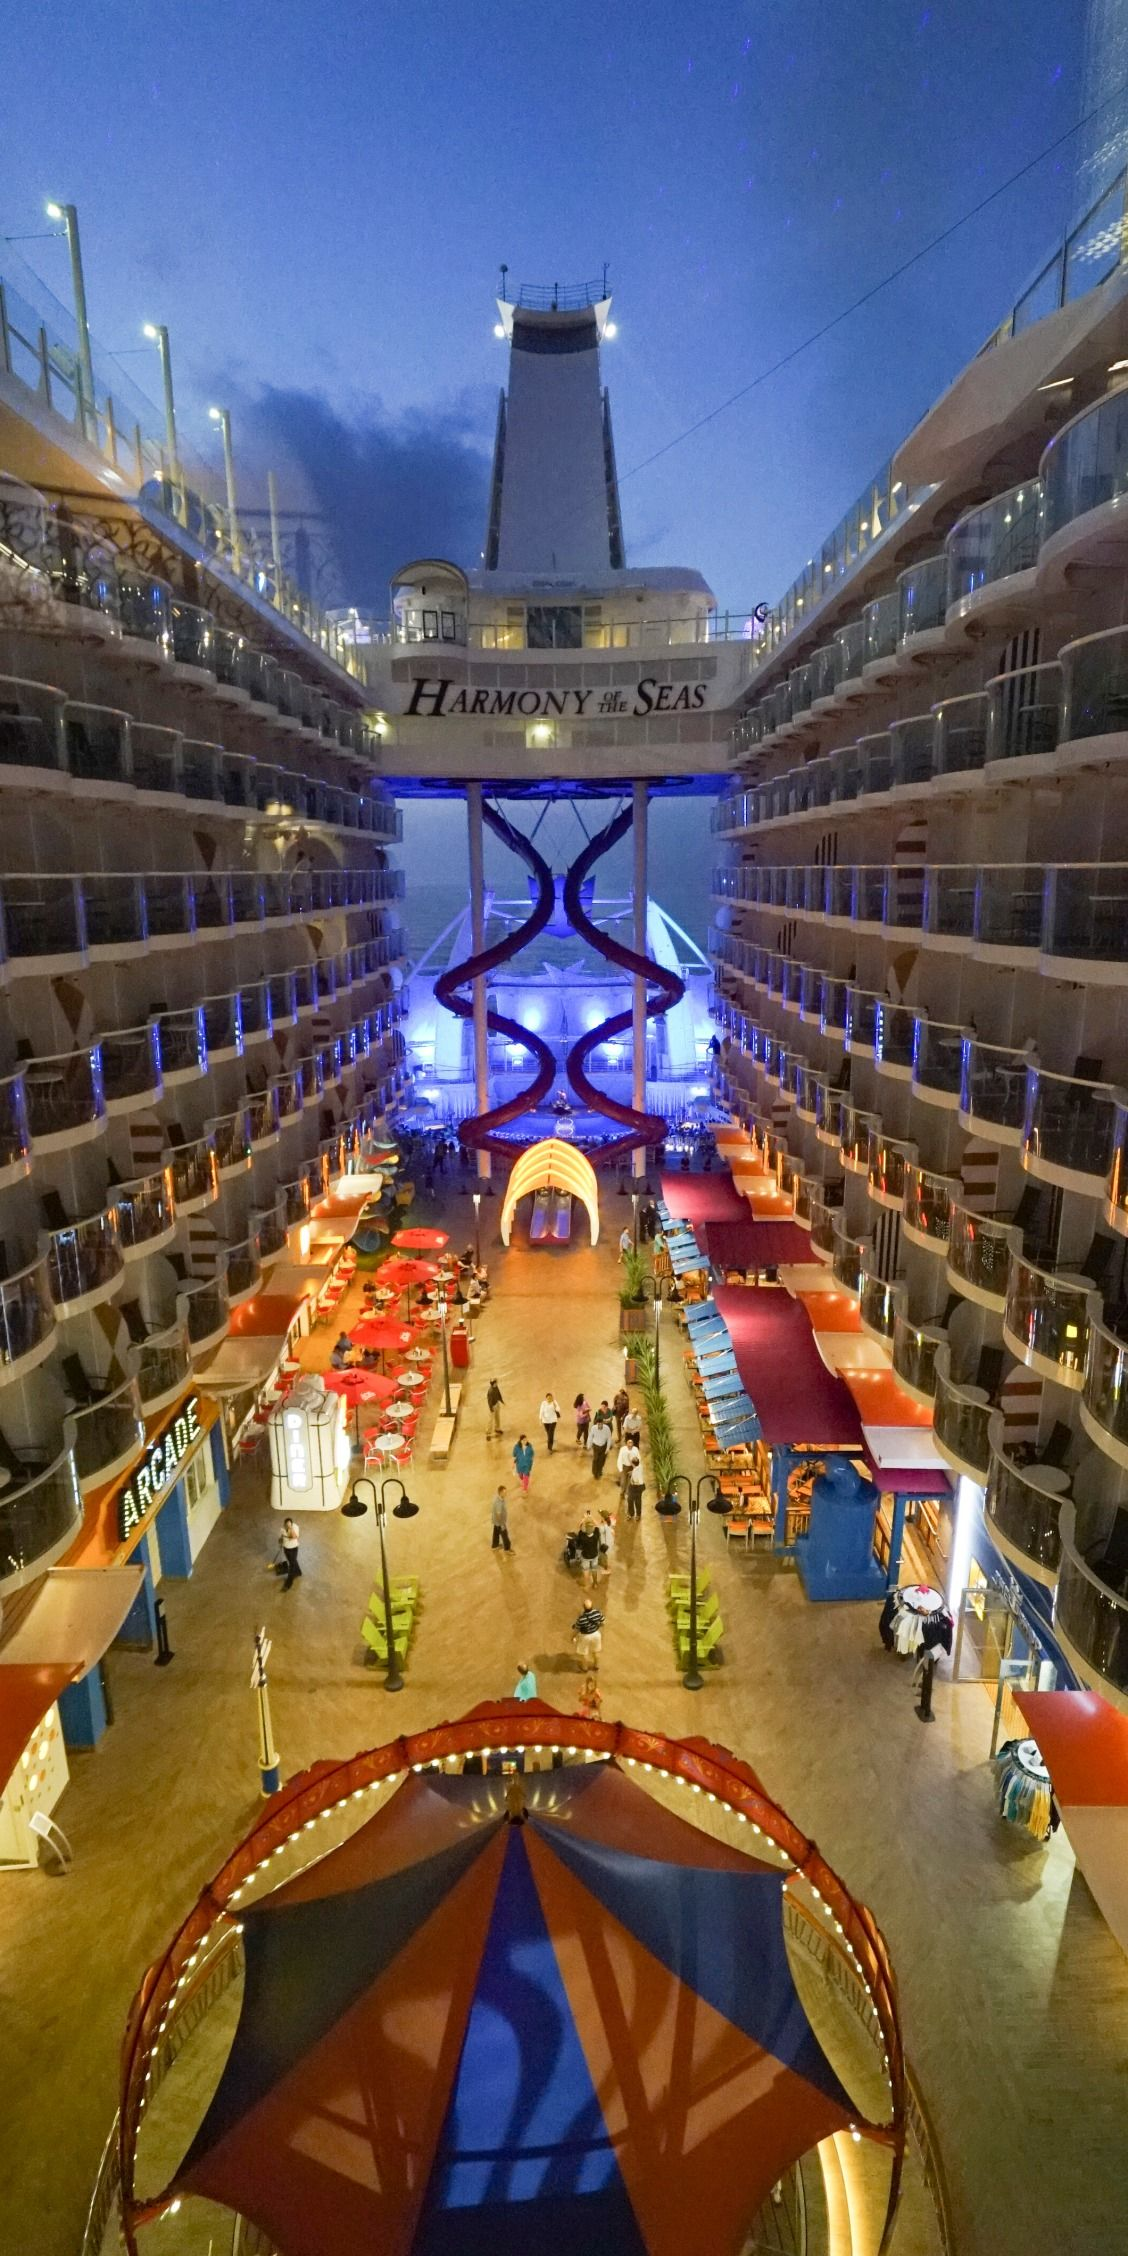 Harmony Of The Seas A Night Out Is Better On The Ocean Cruise With Royal Caribbean Onboard Harmony Of Royal Caribbean Ships Harmony Of The Seas Cruise Ship